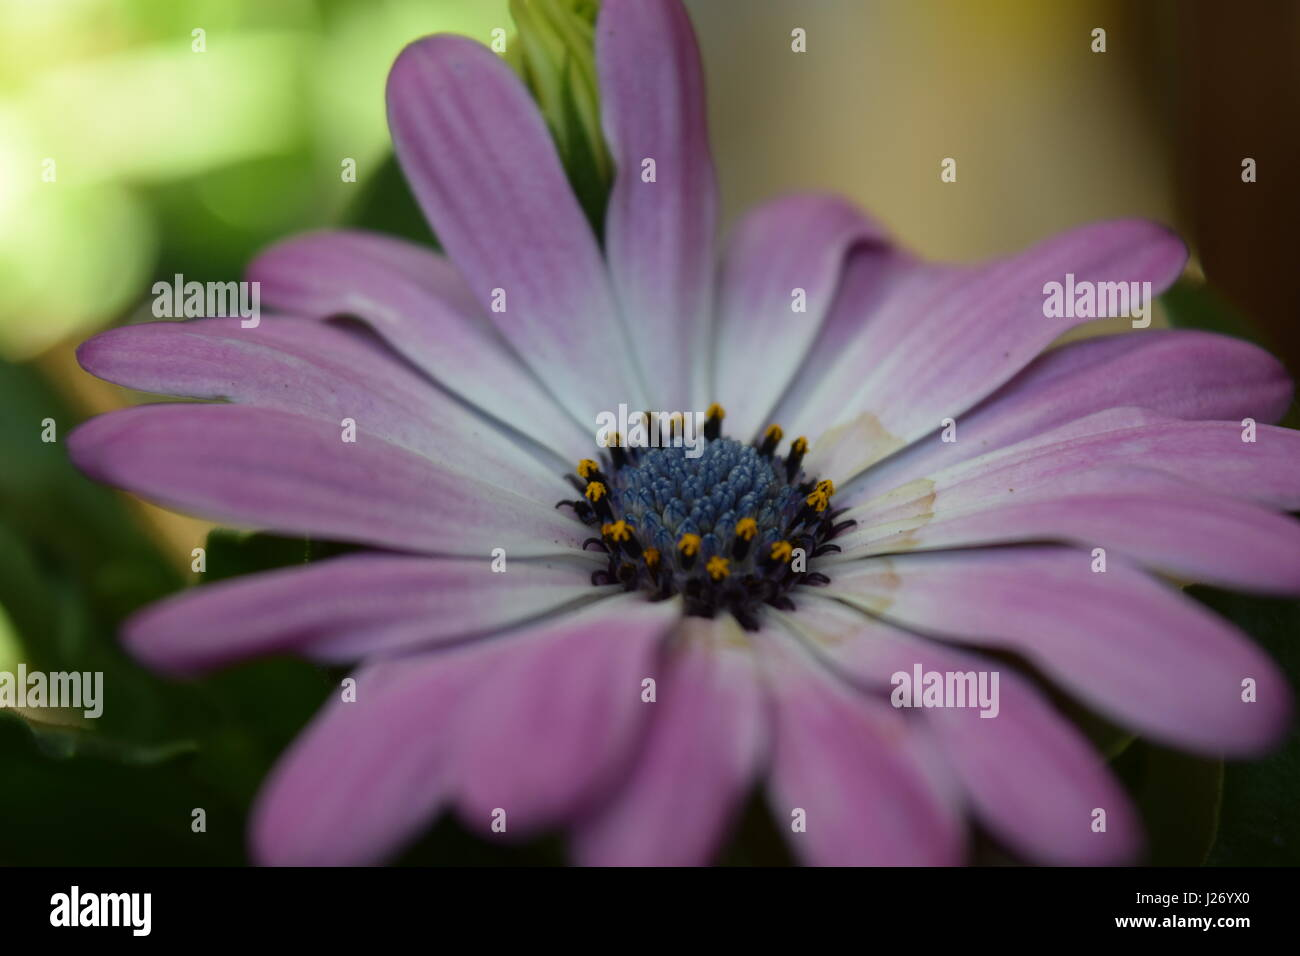 Blooming pink flower - Stock Image